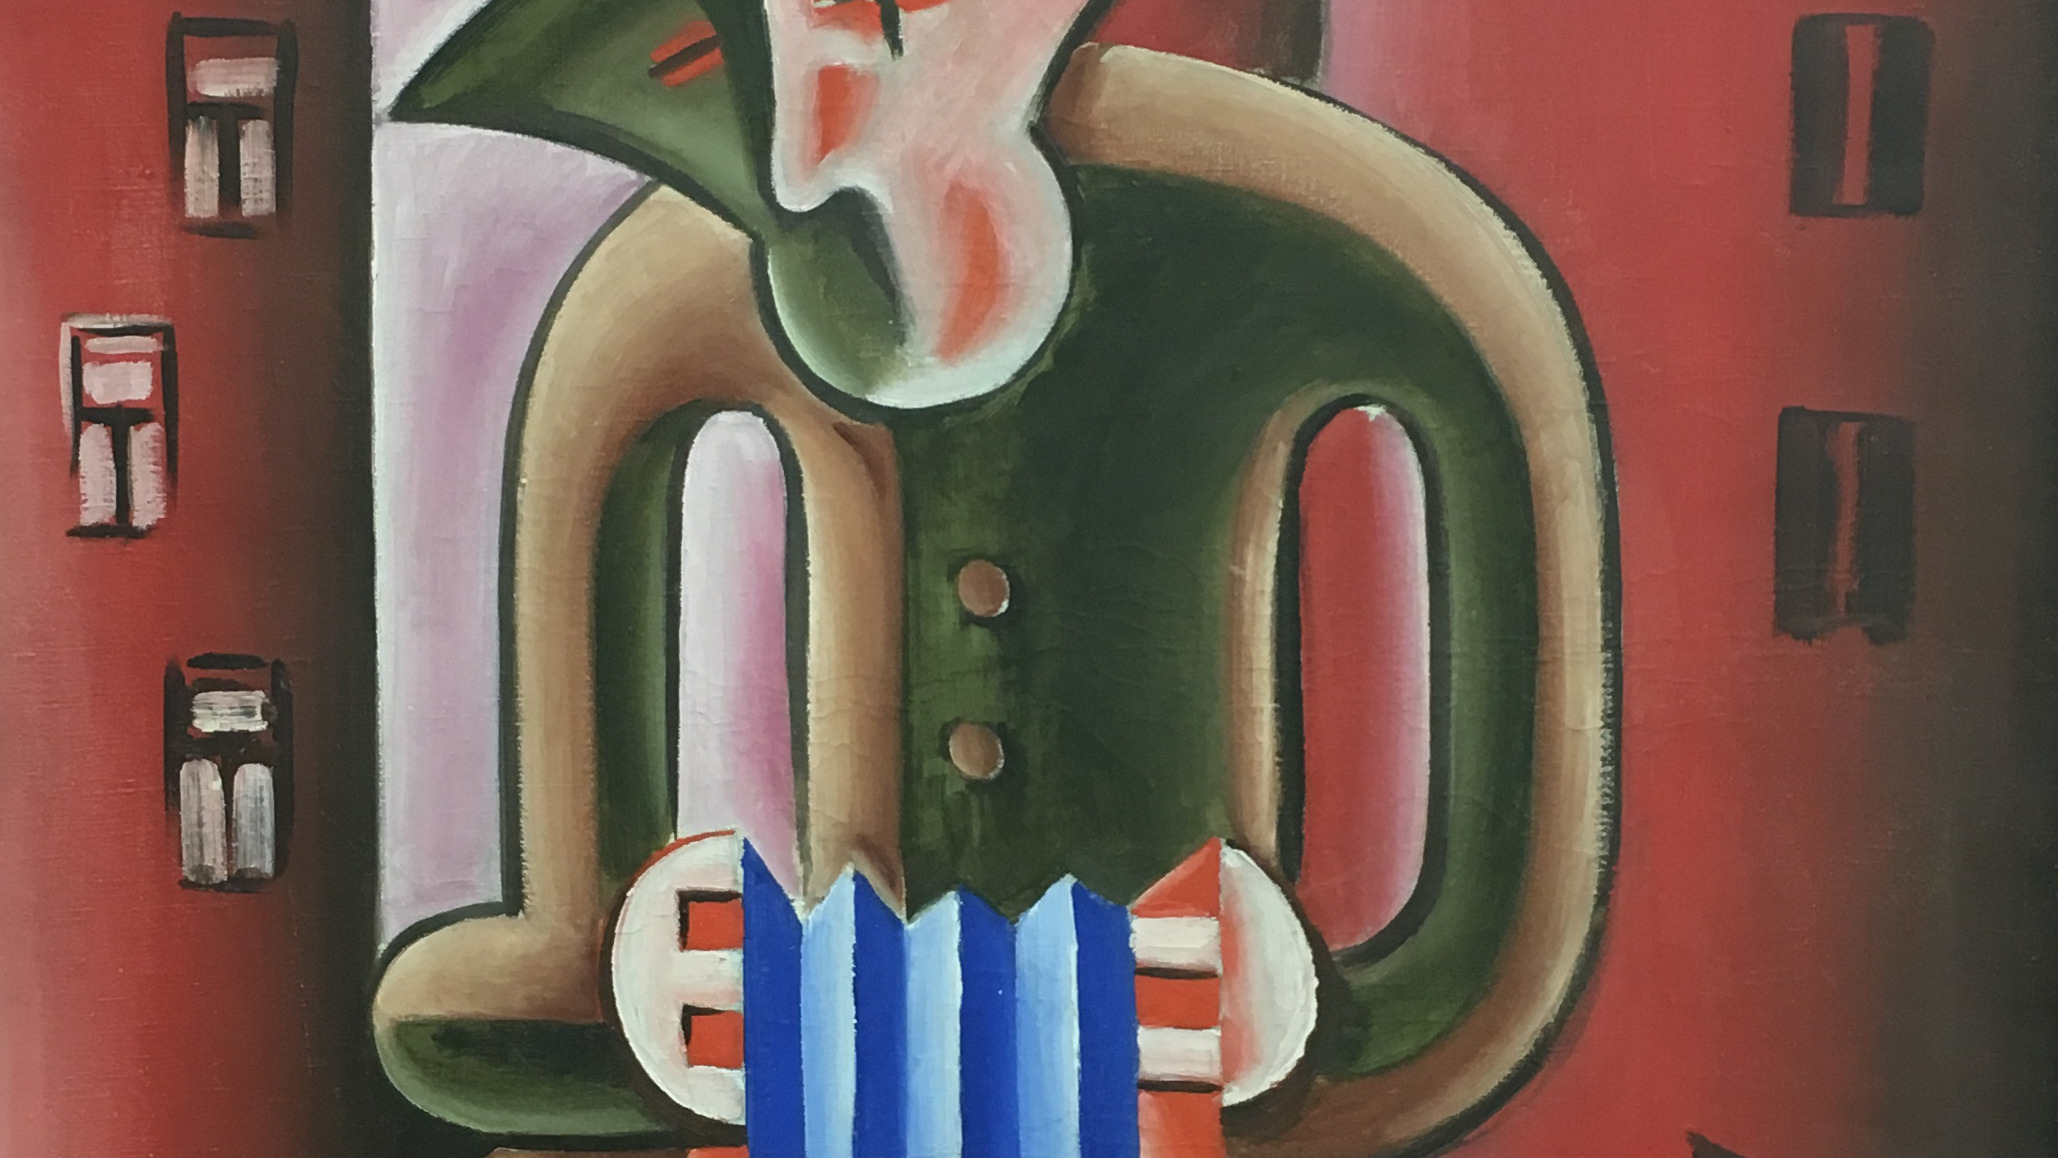 Josef Capek (1887-1945), Harmonikar, Accordion Player, 1919, akquired in 1965